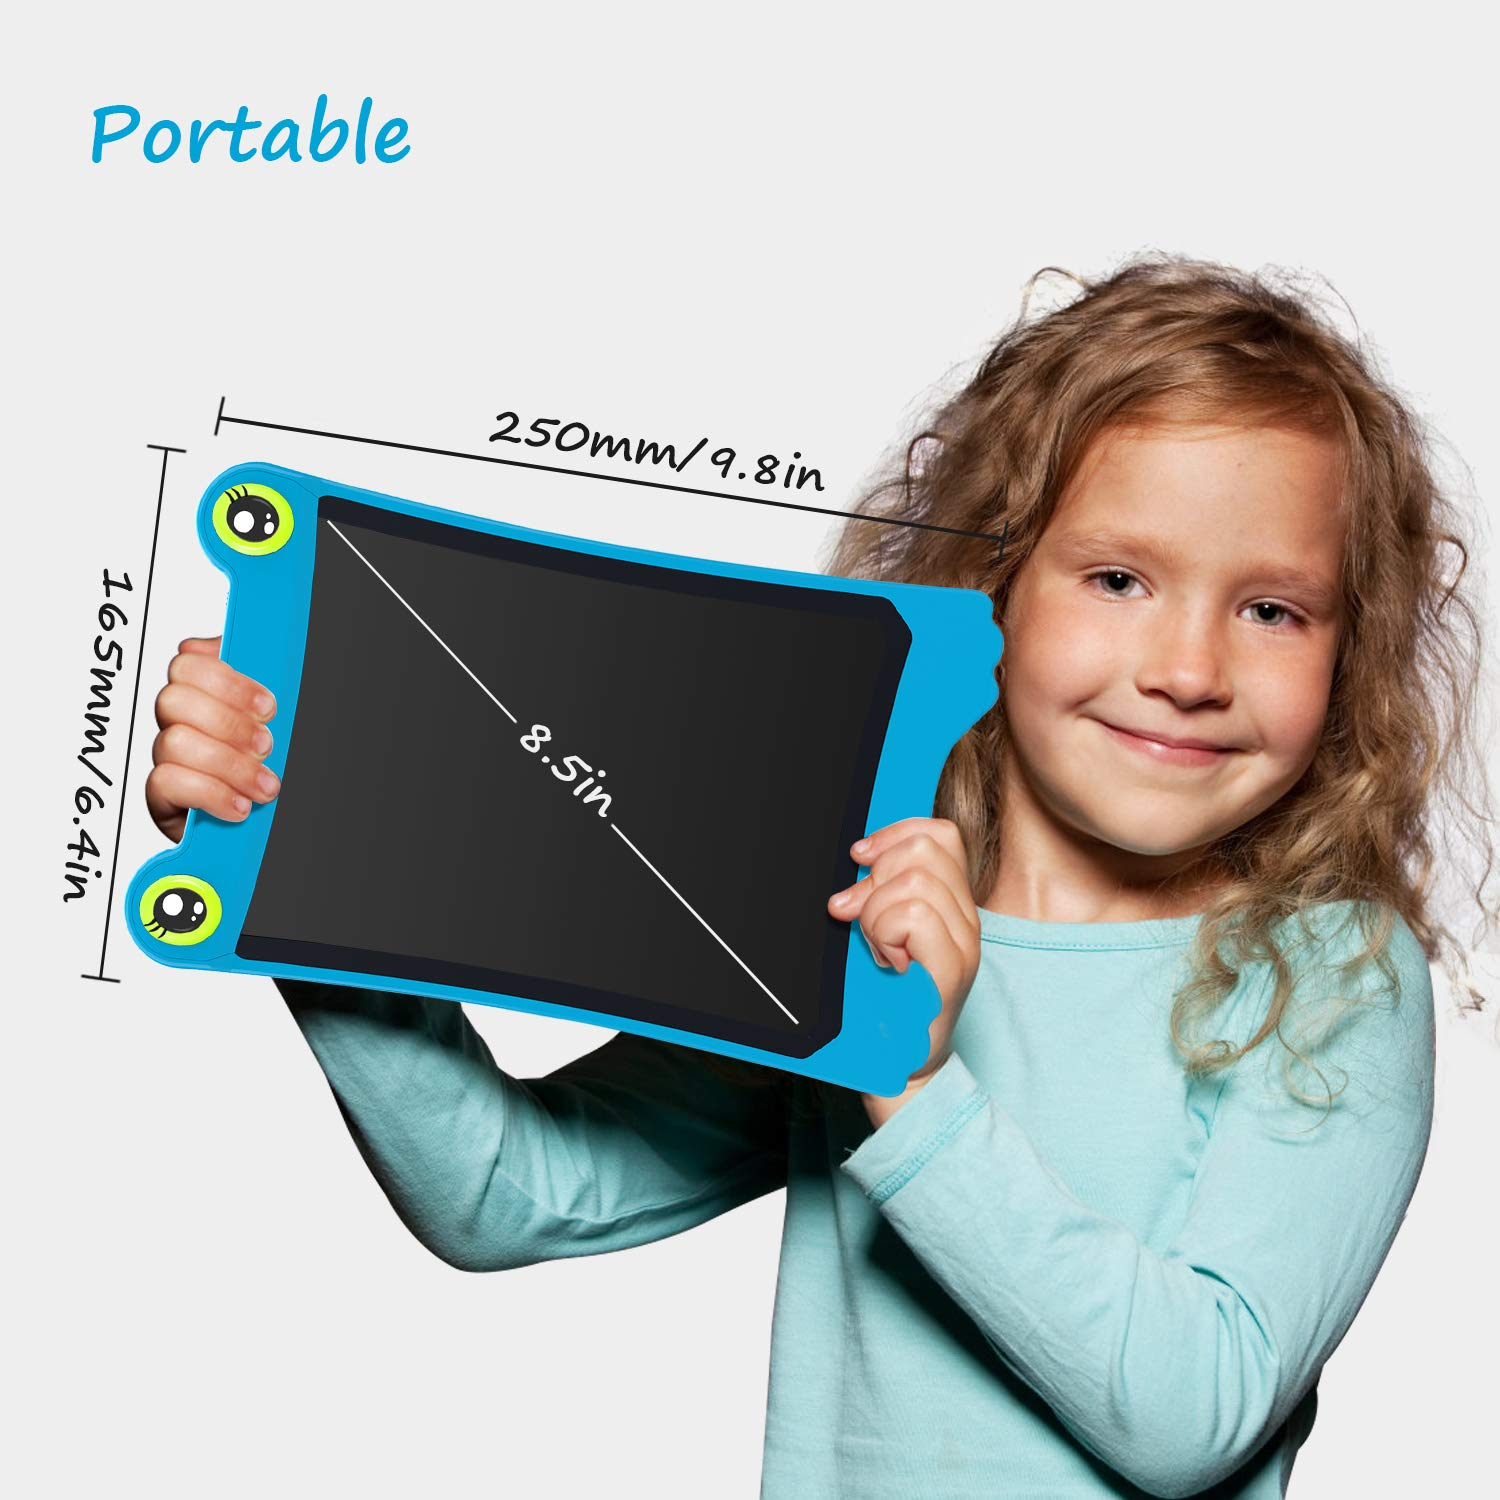 NEWYES 8.5 Inch LCD Writing Tablet Updated Frog Pad Children Electronic Doodle Board Jot Digital E-Writer Kids Scribble Toy with Lock Function Blue by NEWYES (Image #2)